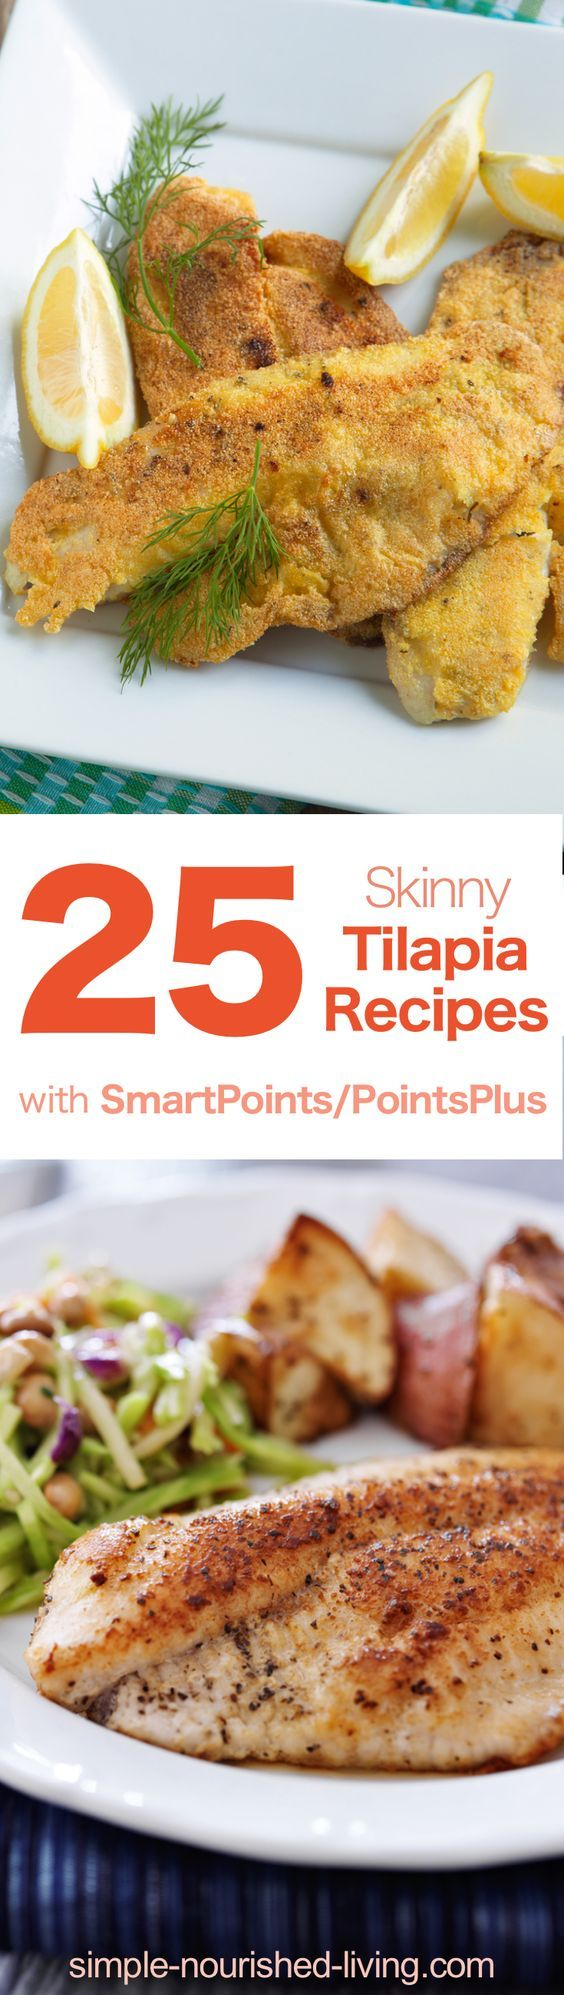 Weight Watchers Recipe Roundup: 25 Skinny Tilapia Recipes with WW SmartPoints/PointPlus values!